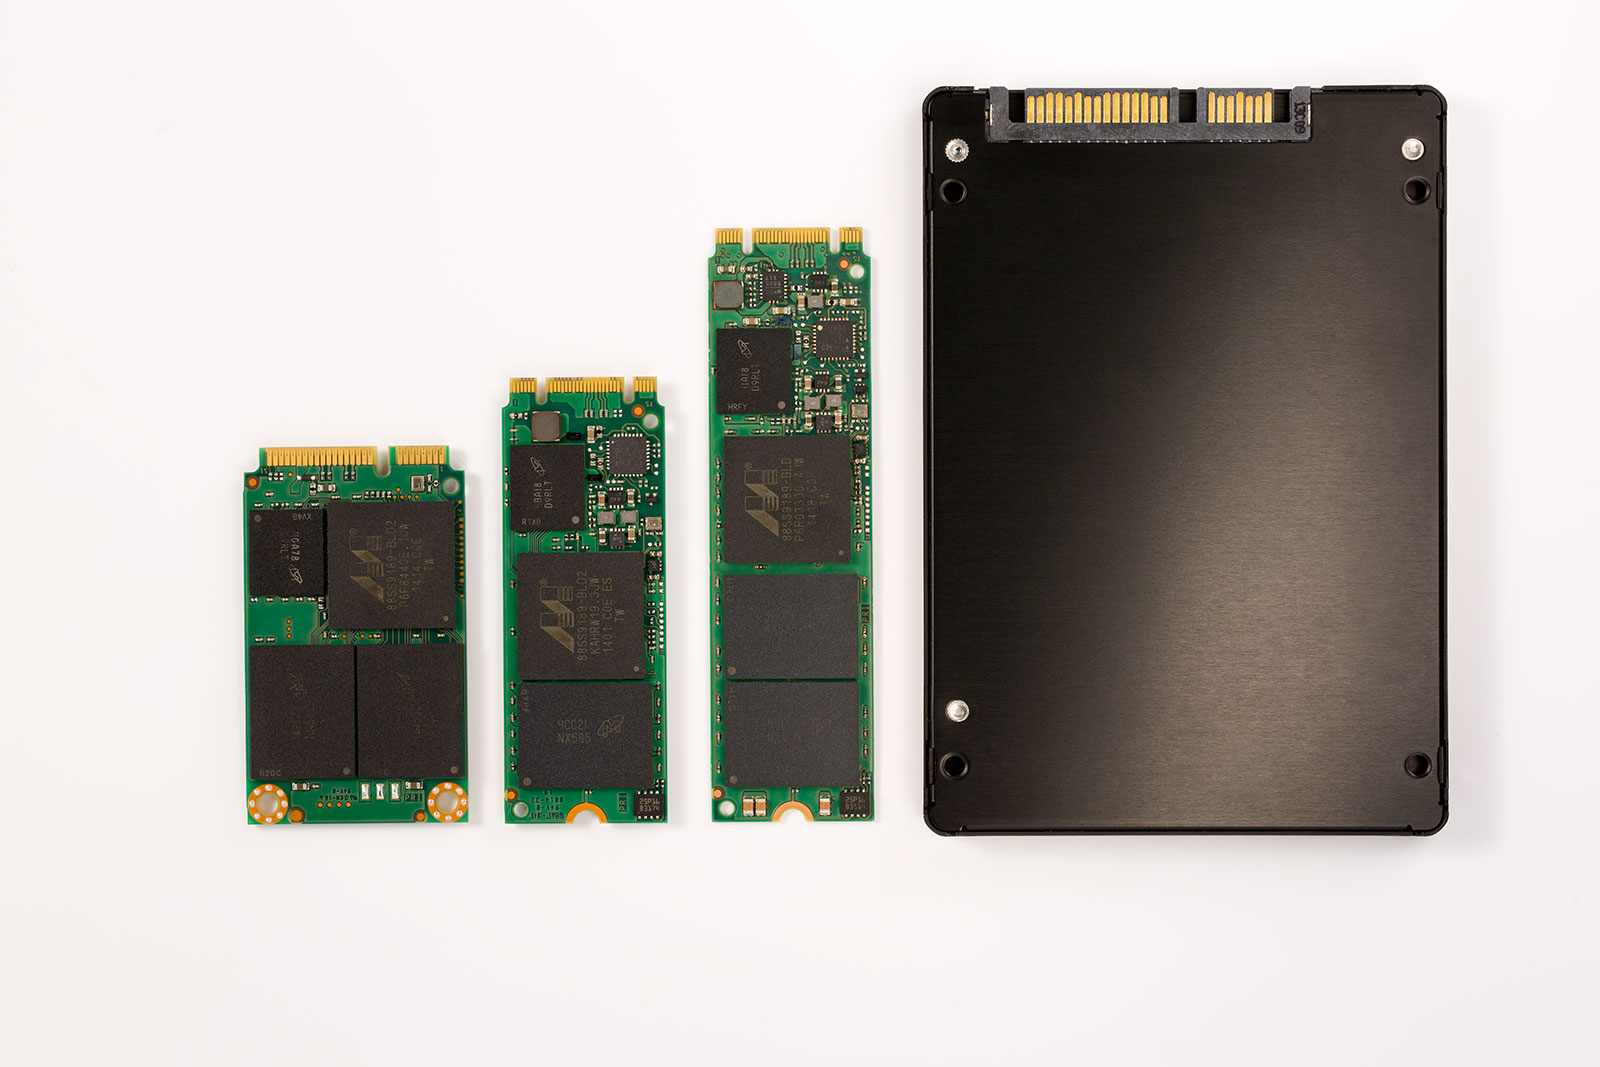 The M600 SATA SSD, specifically designed to take advantage of Micron's leading-edge NAND Flash technology, addresses the storage demands of modern mobile computing applications. (image credit: Micron Technology)